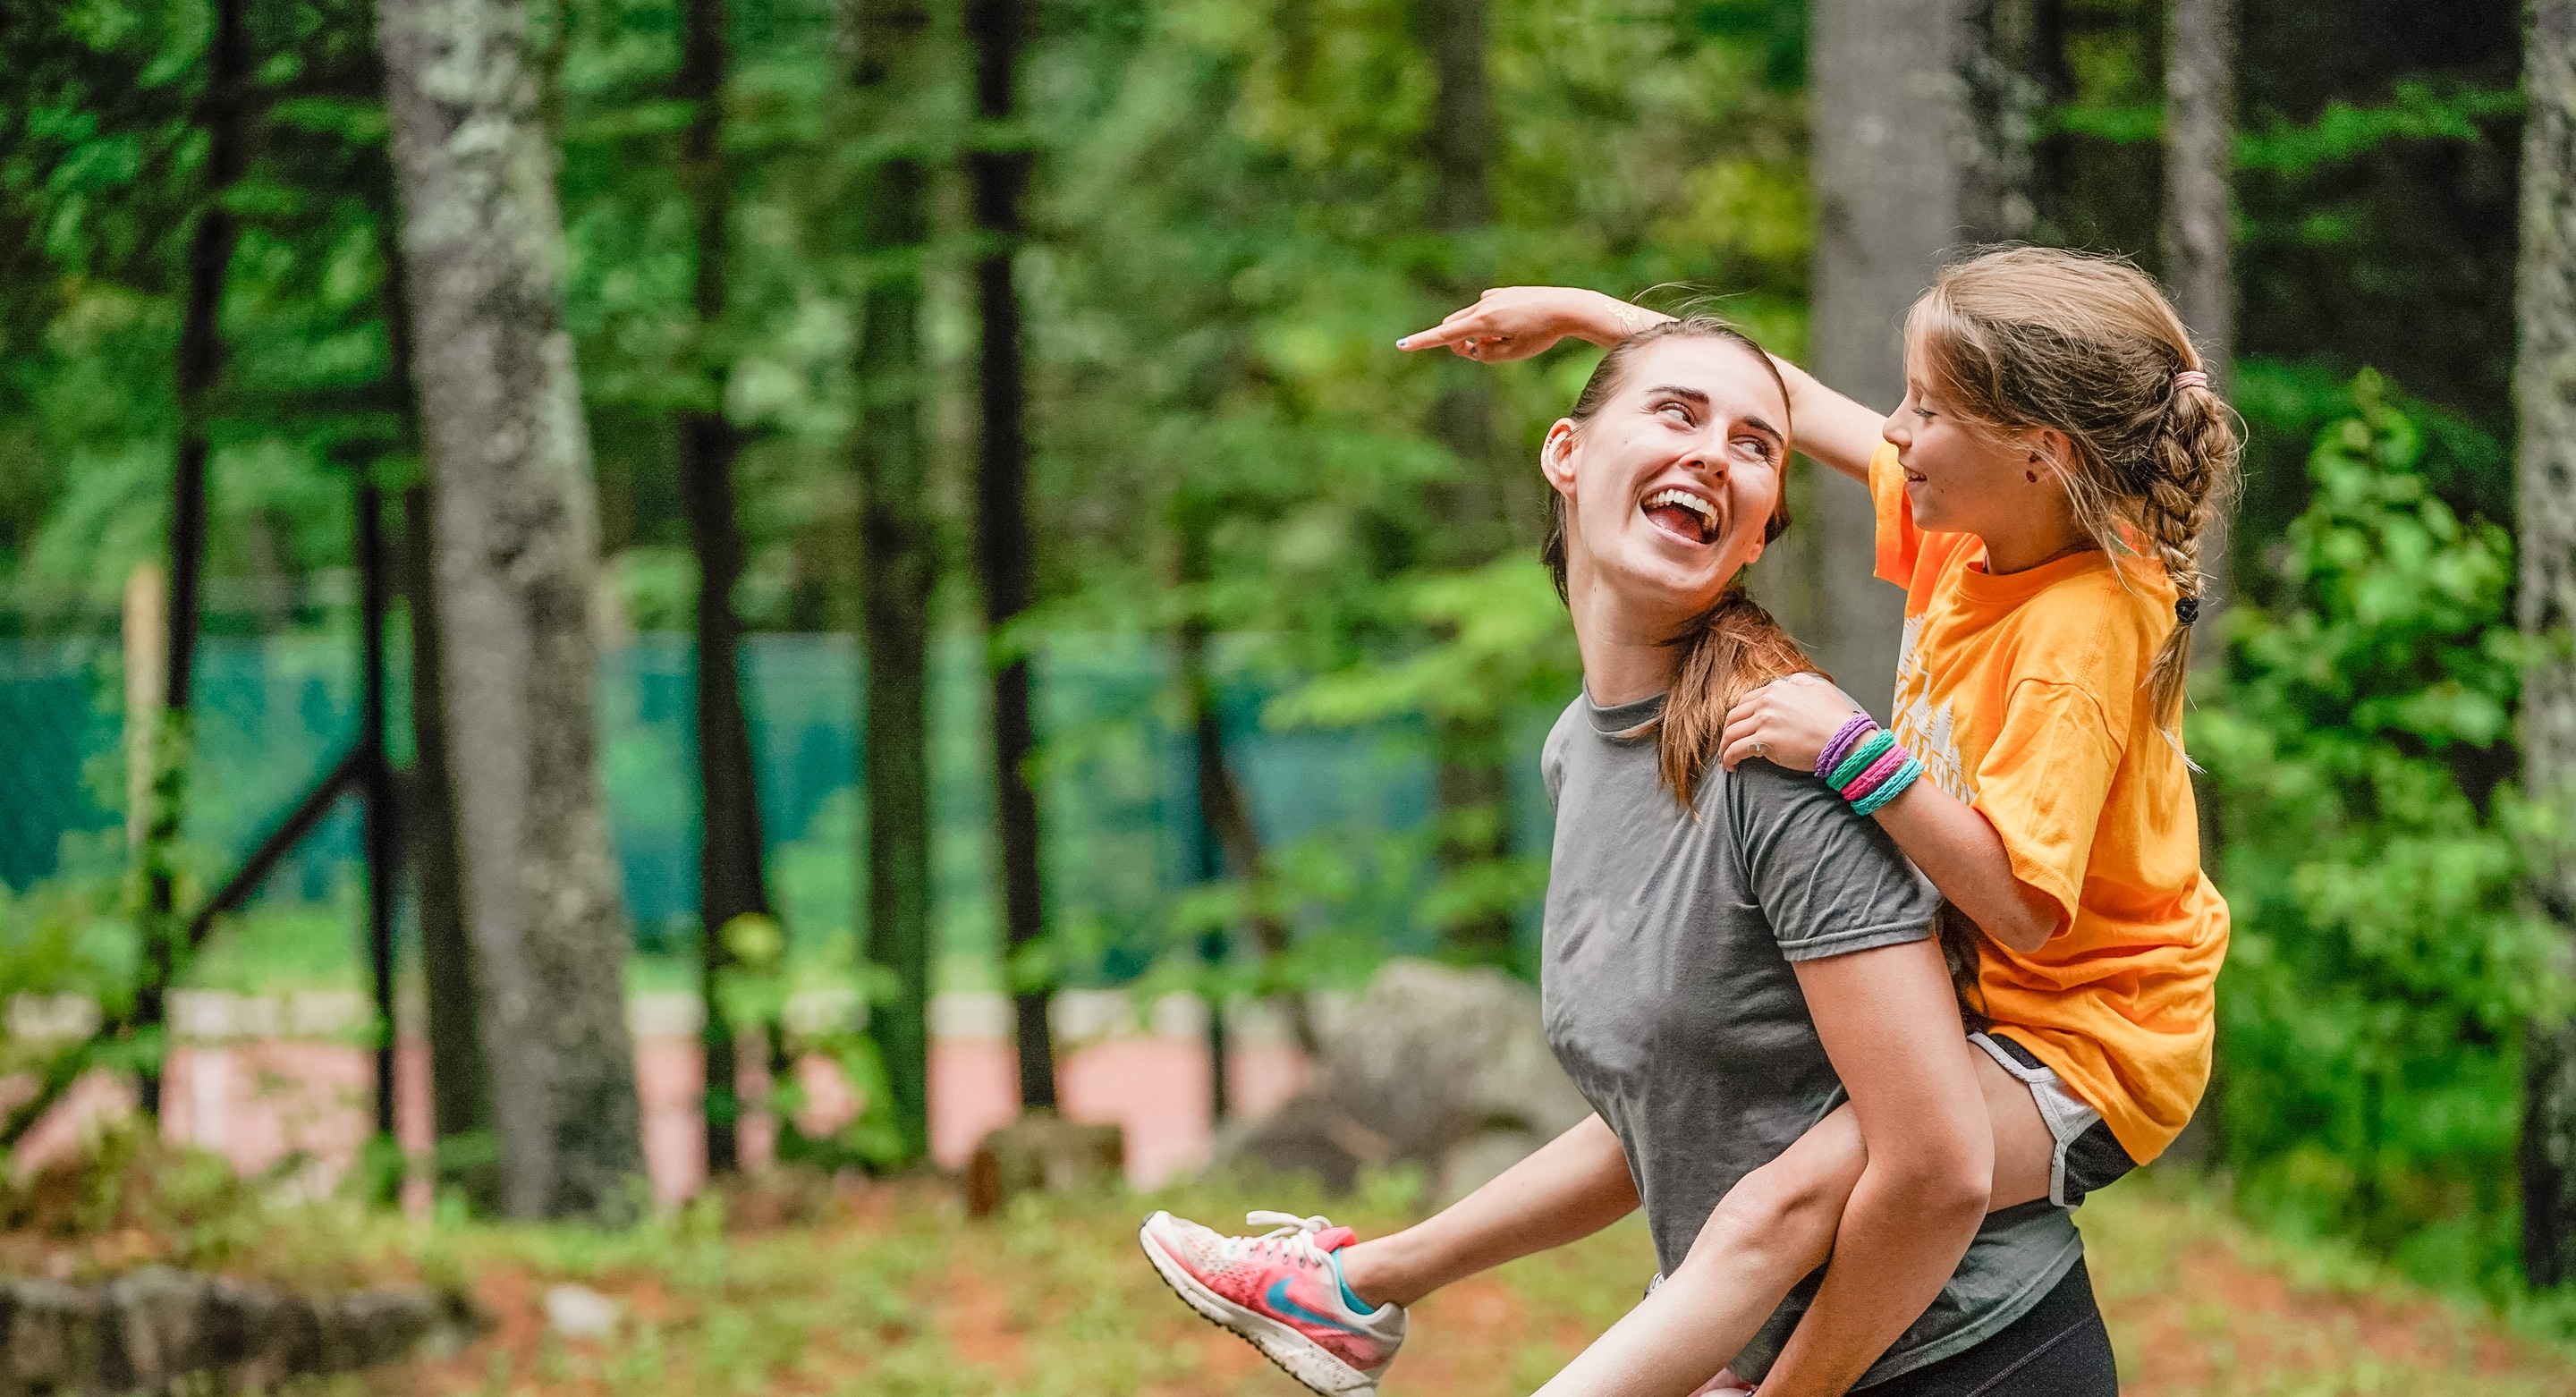 camp counselor looking back and smiling while giving a young girl a piggy back ride